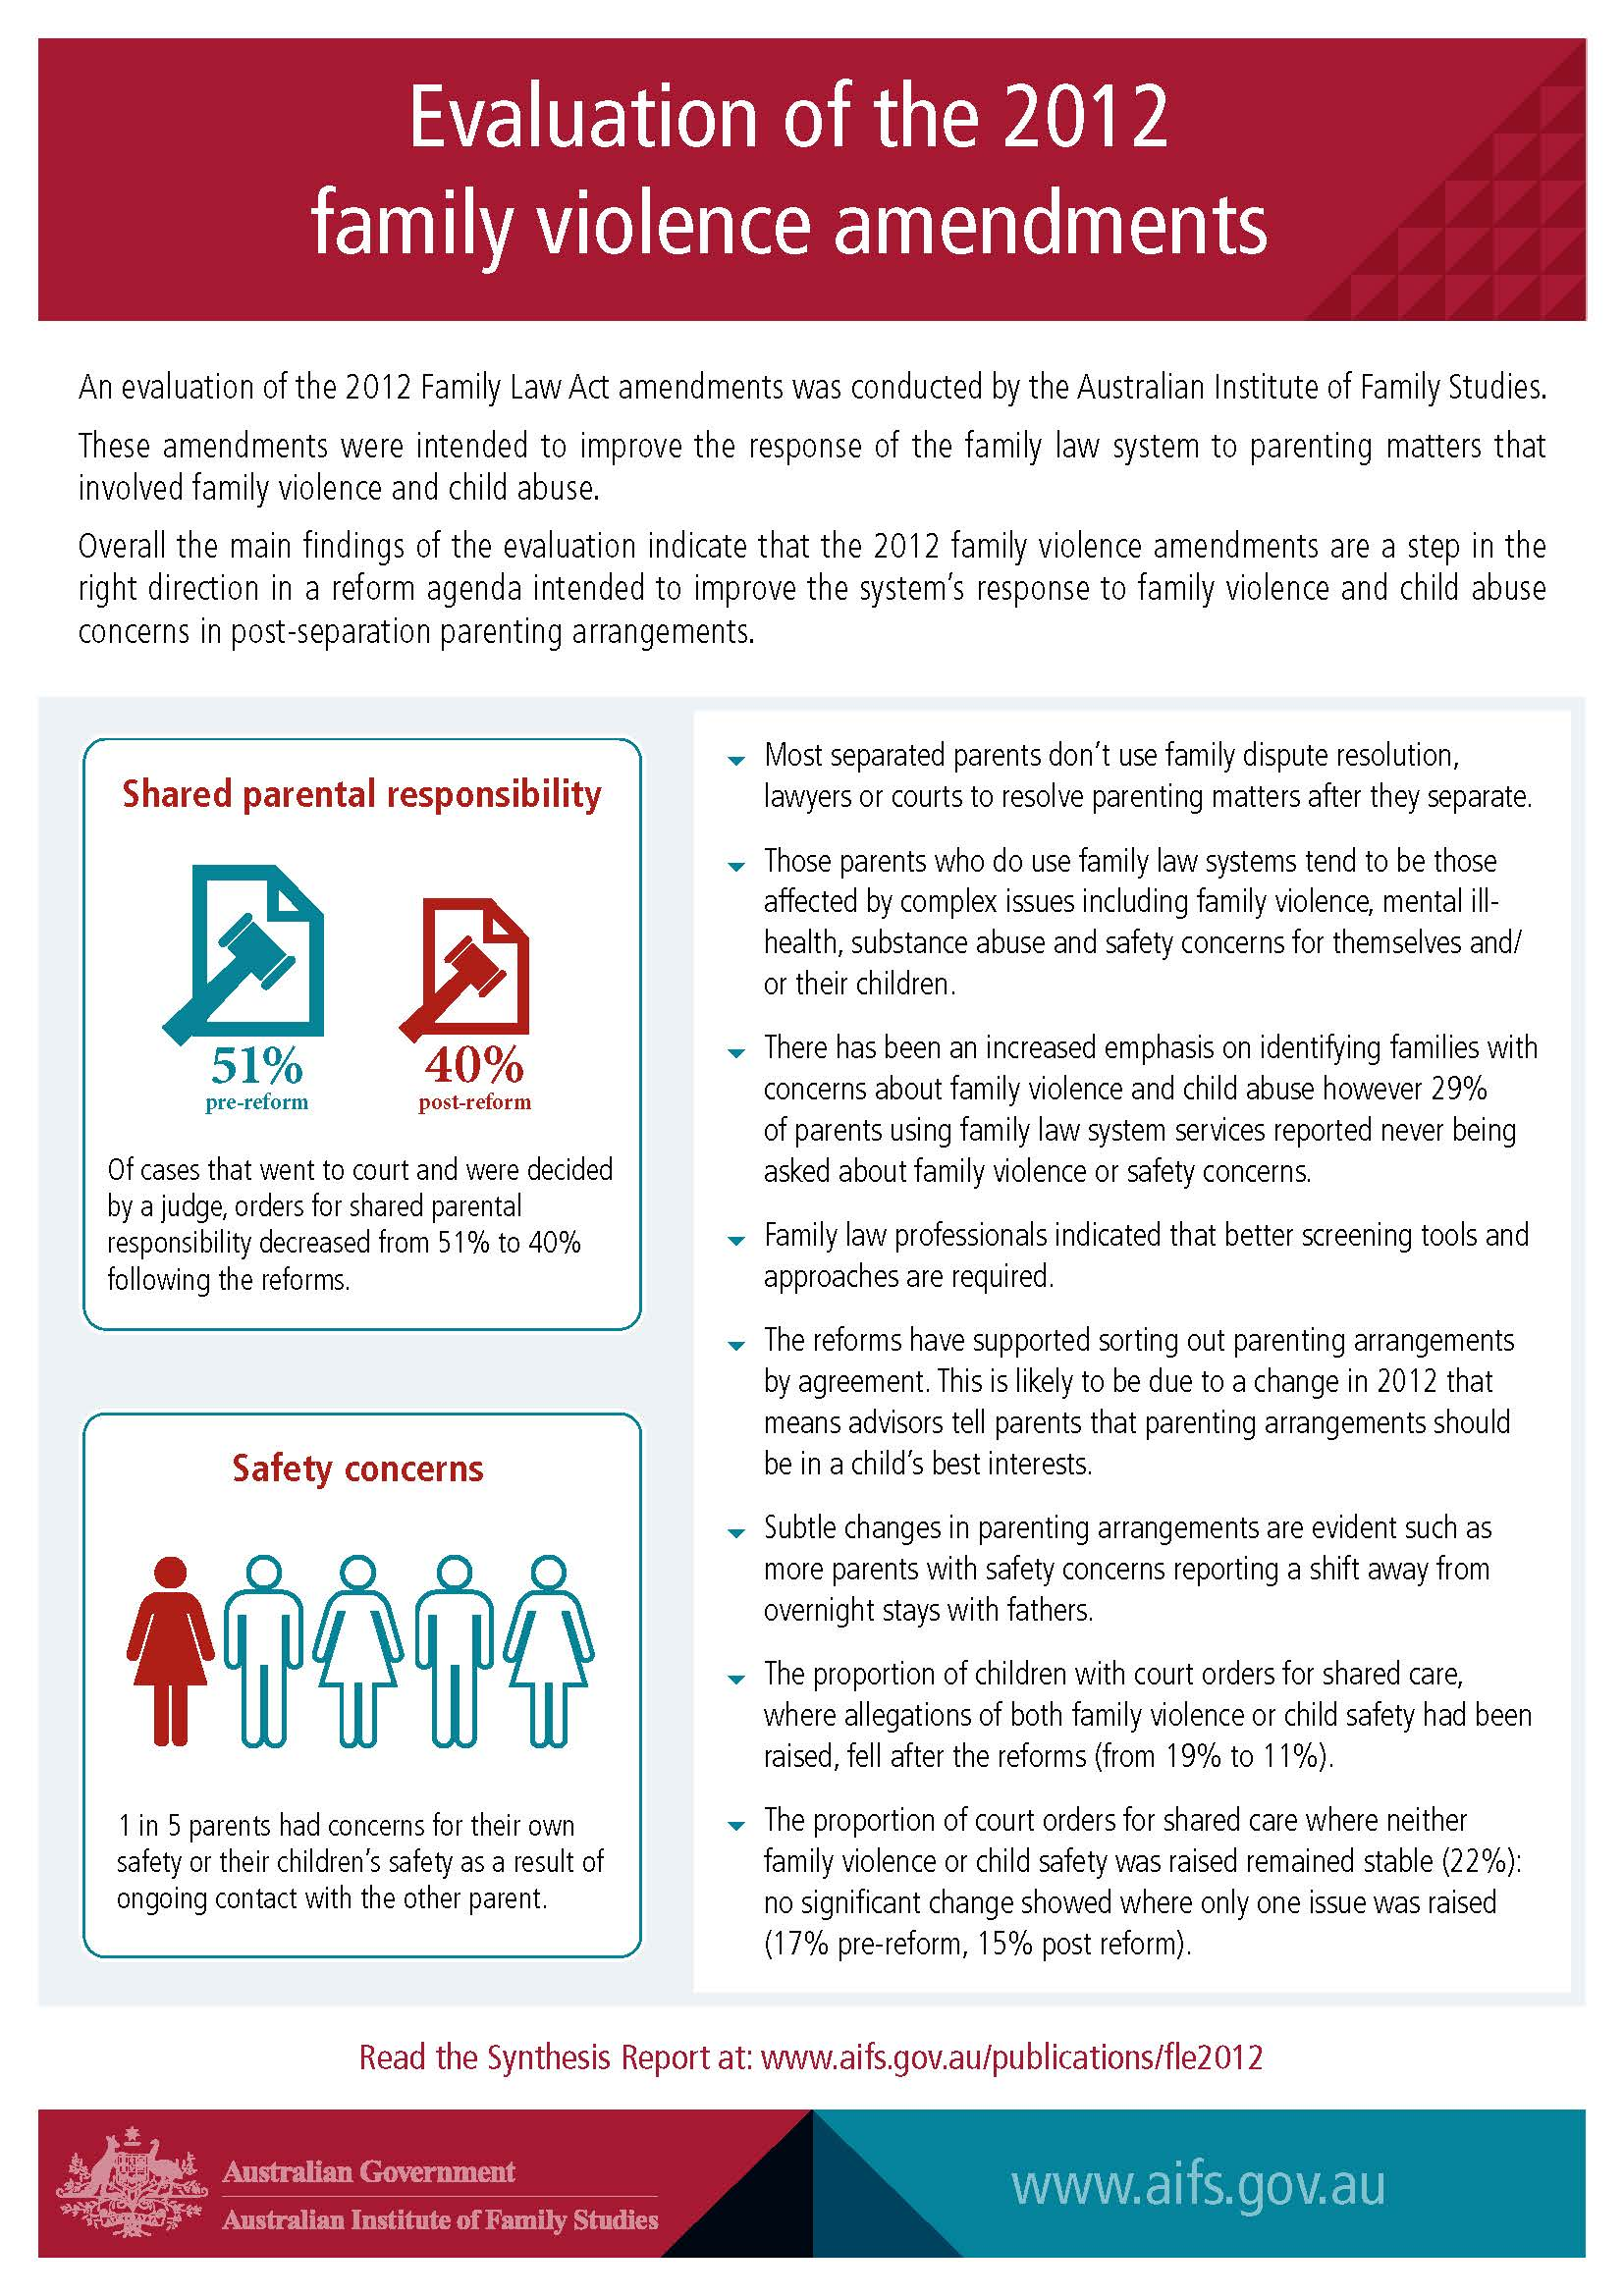 Evaluation of the 2012 family violence amendments_quick facts.jpg